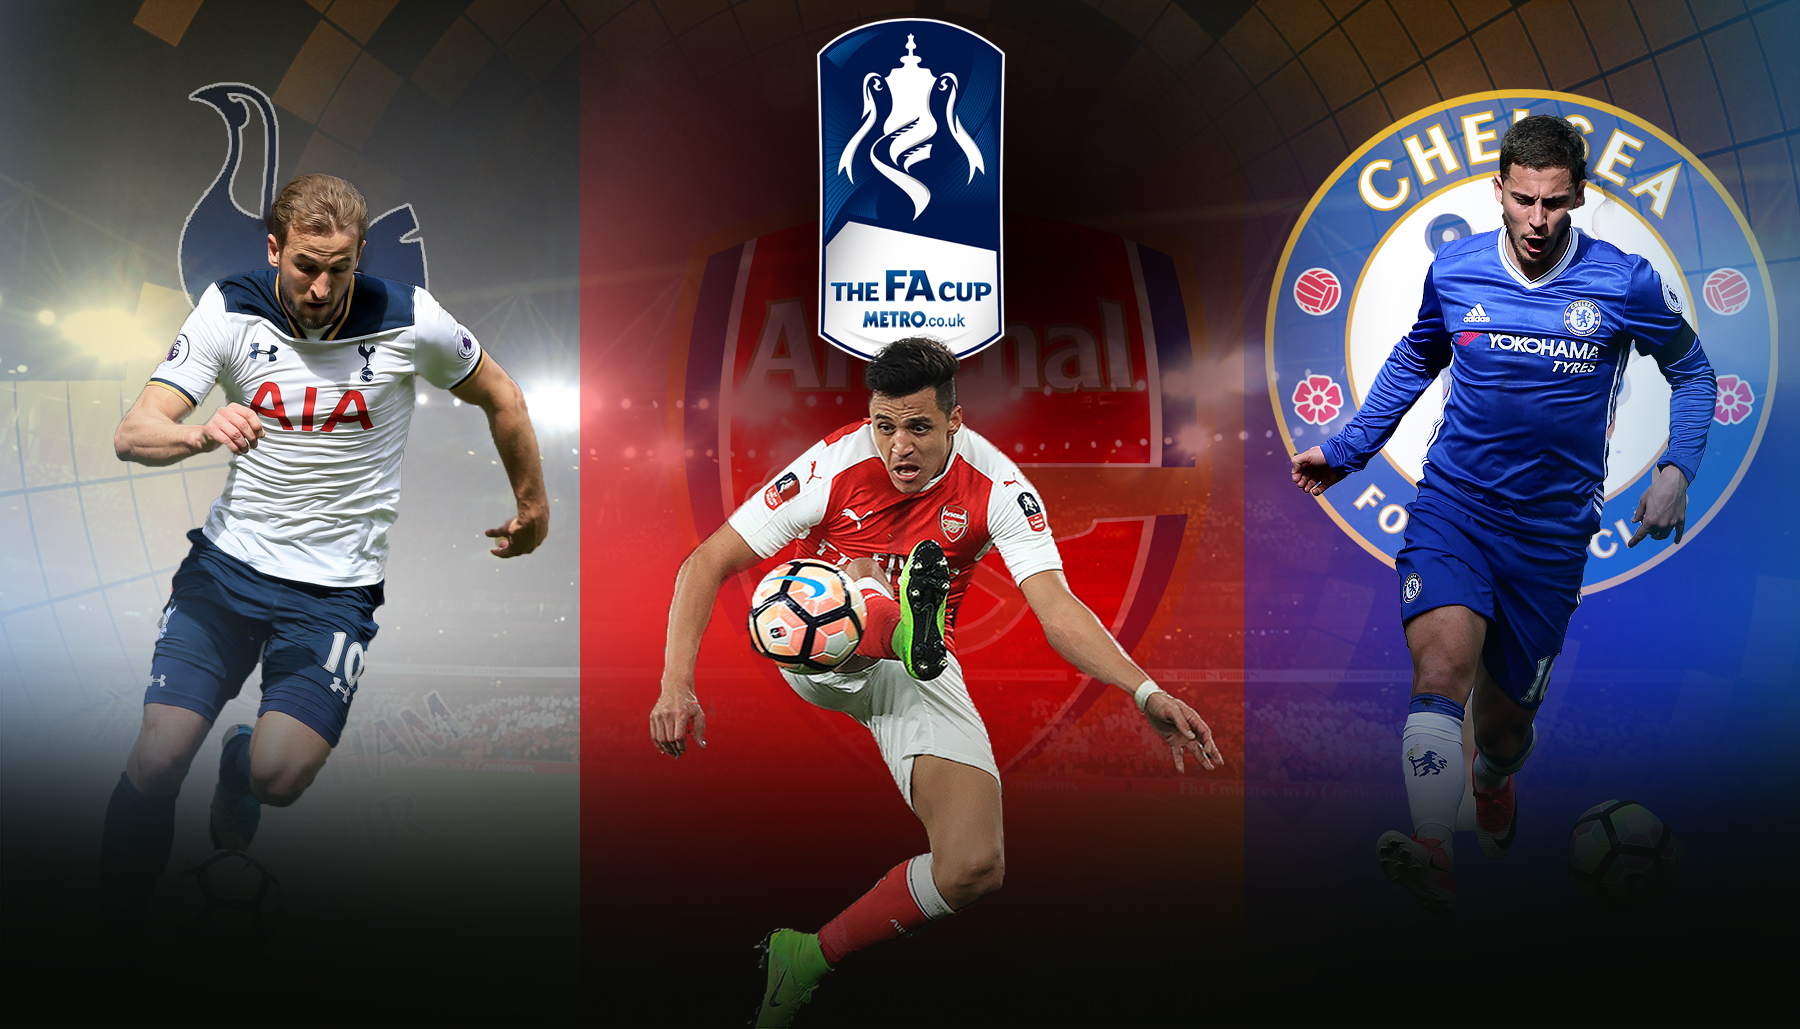 Chelsea, Arsenal, Tottenham and Man City combined XI: Alexis Sanchez and Eden Hazard lead FA Cup semi-final all-star side